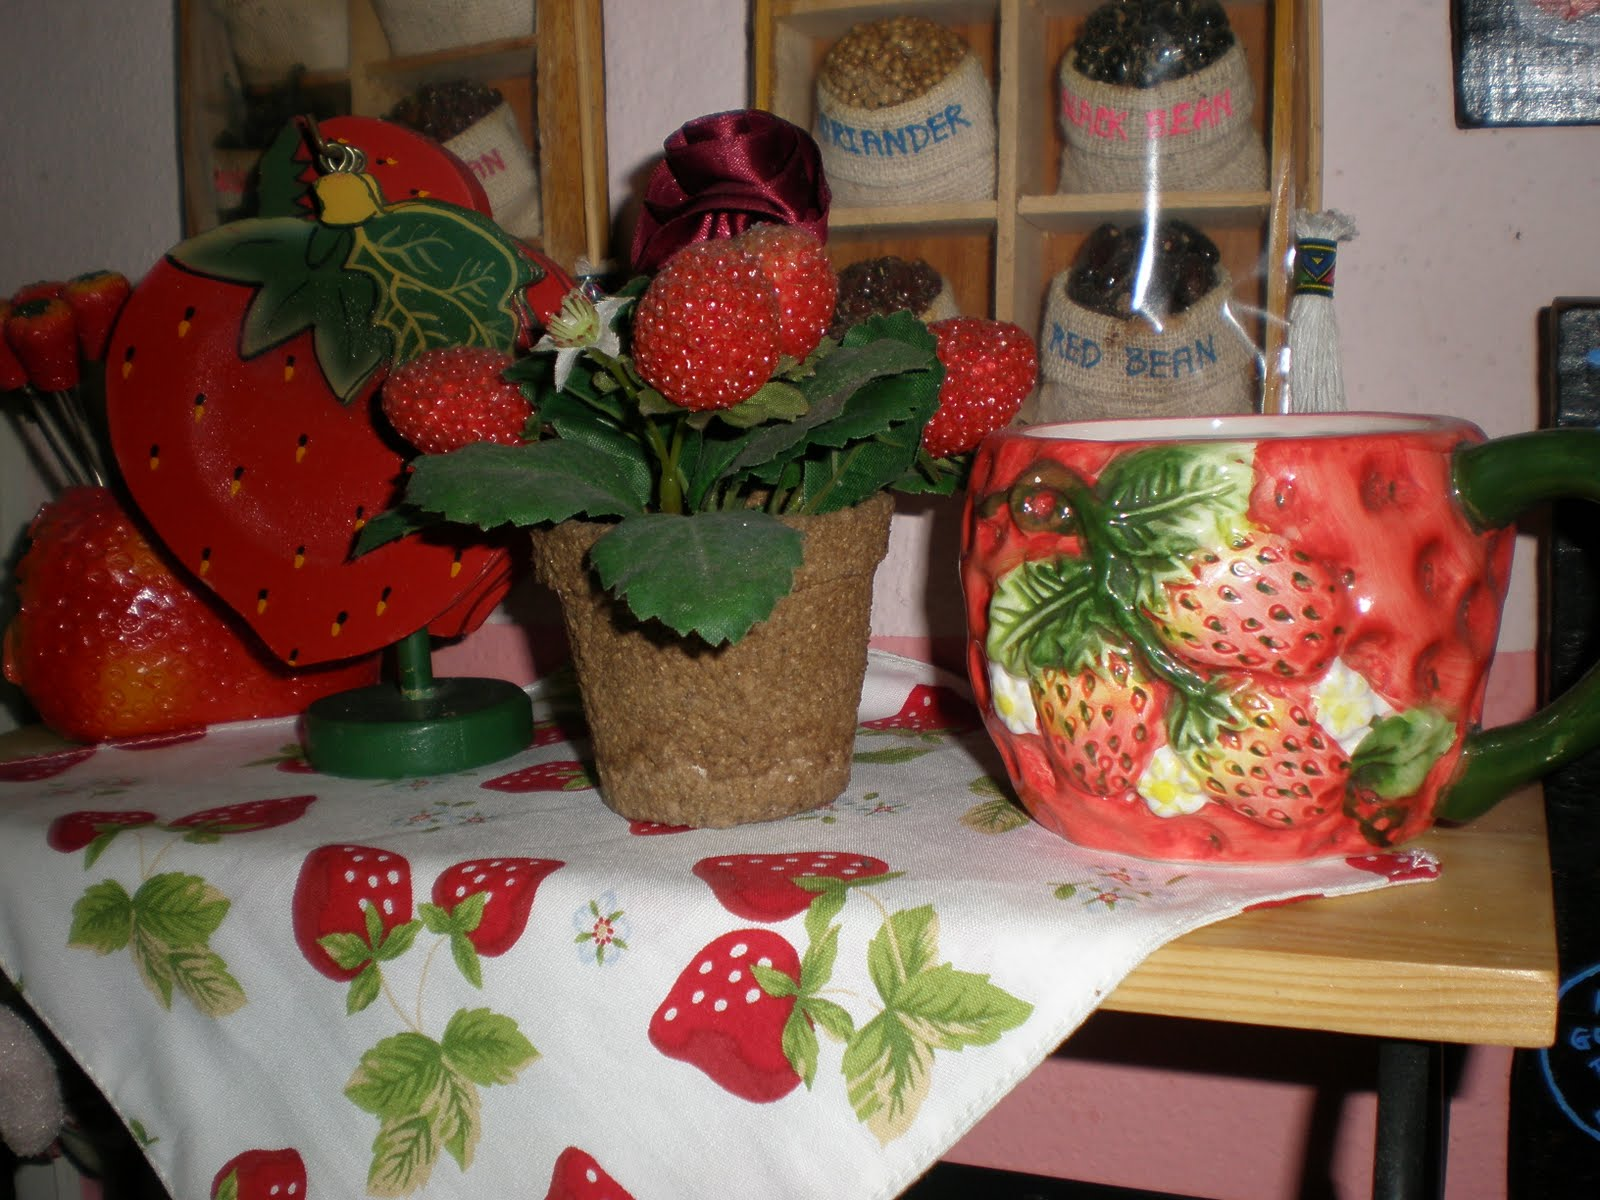 Jaja's soft touch collections: jajameor's strawberry collections